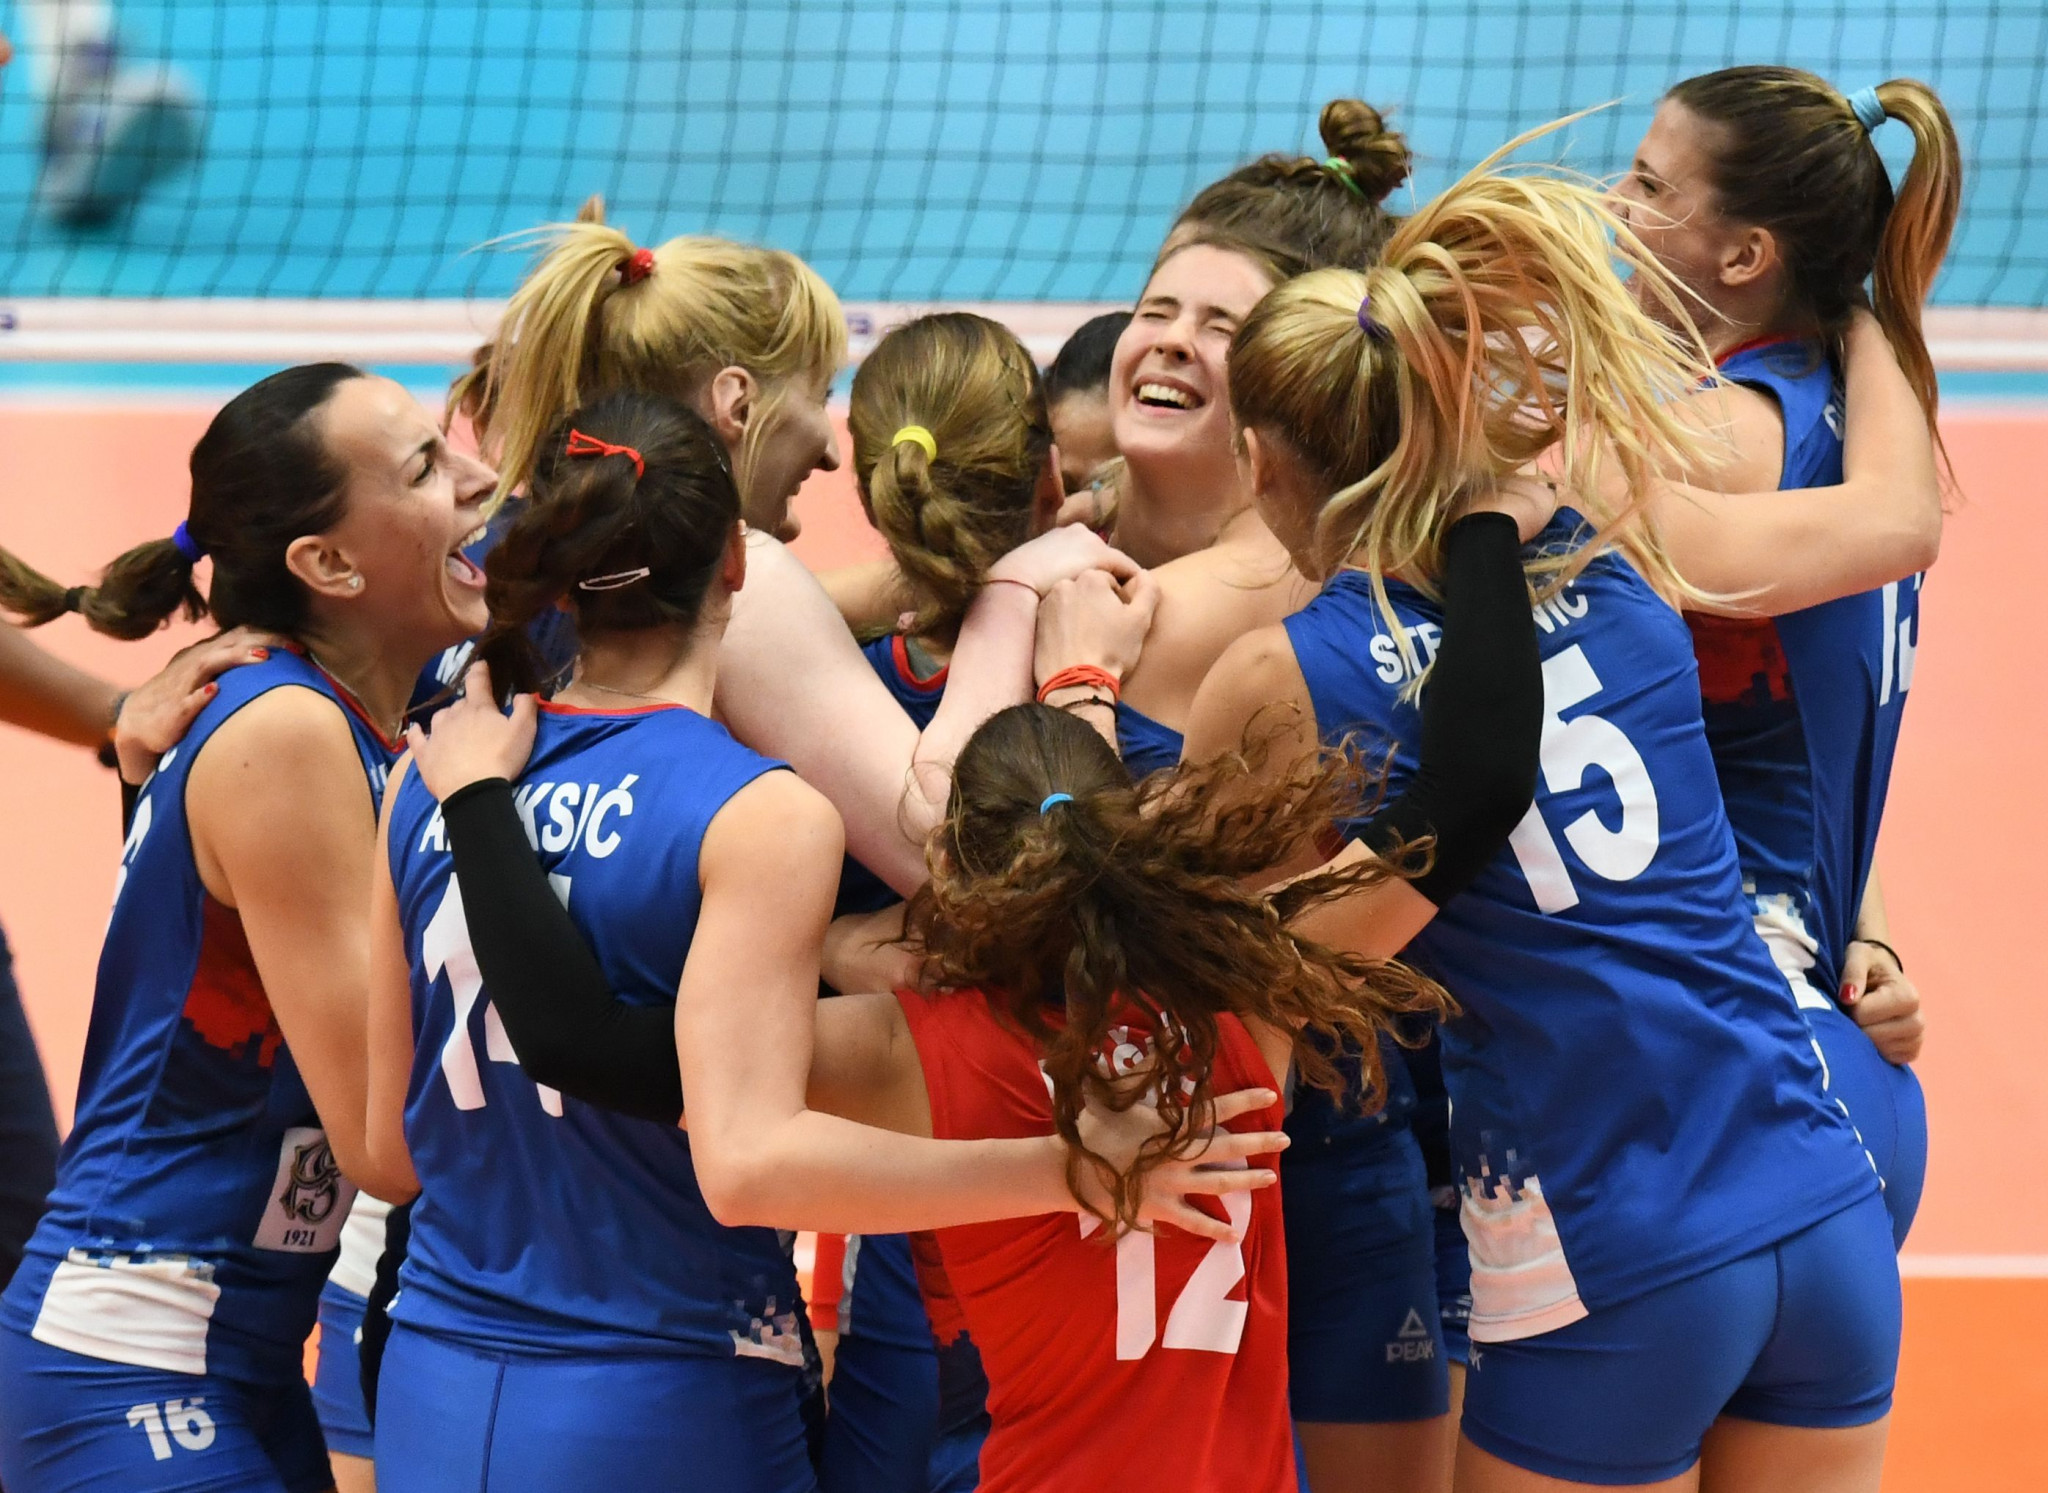 Serbia and Italy to clash in Women's Volleyball World Championship final